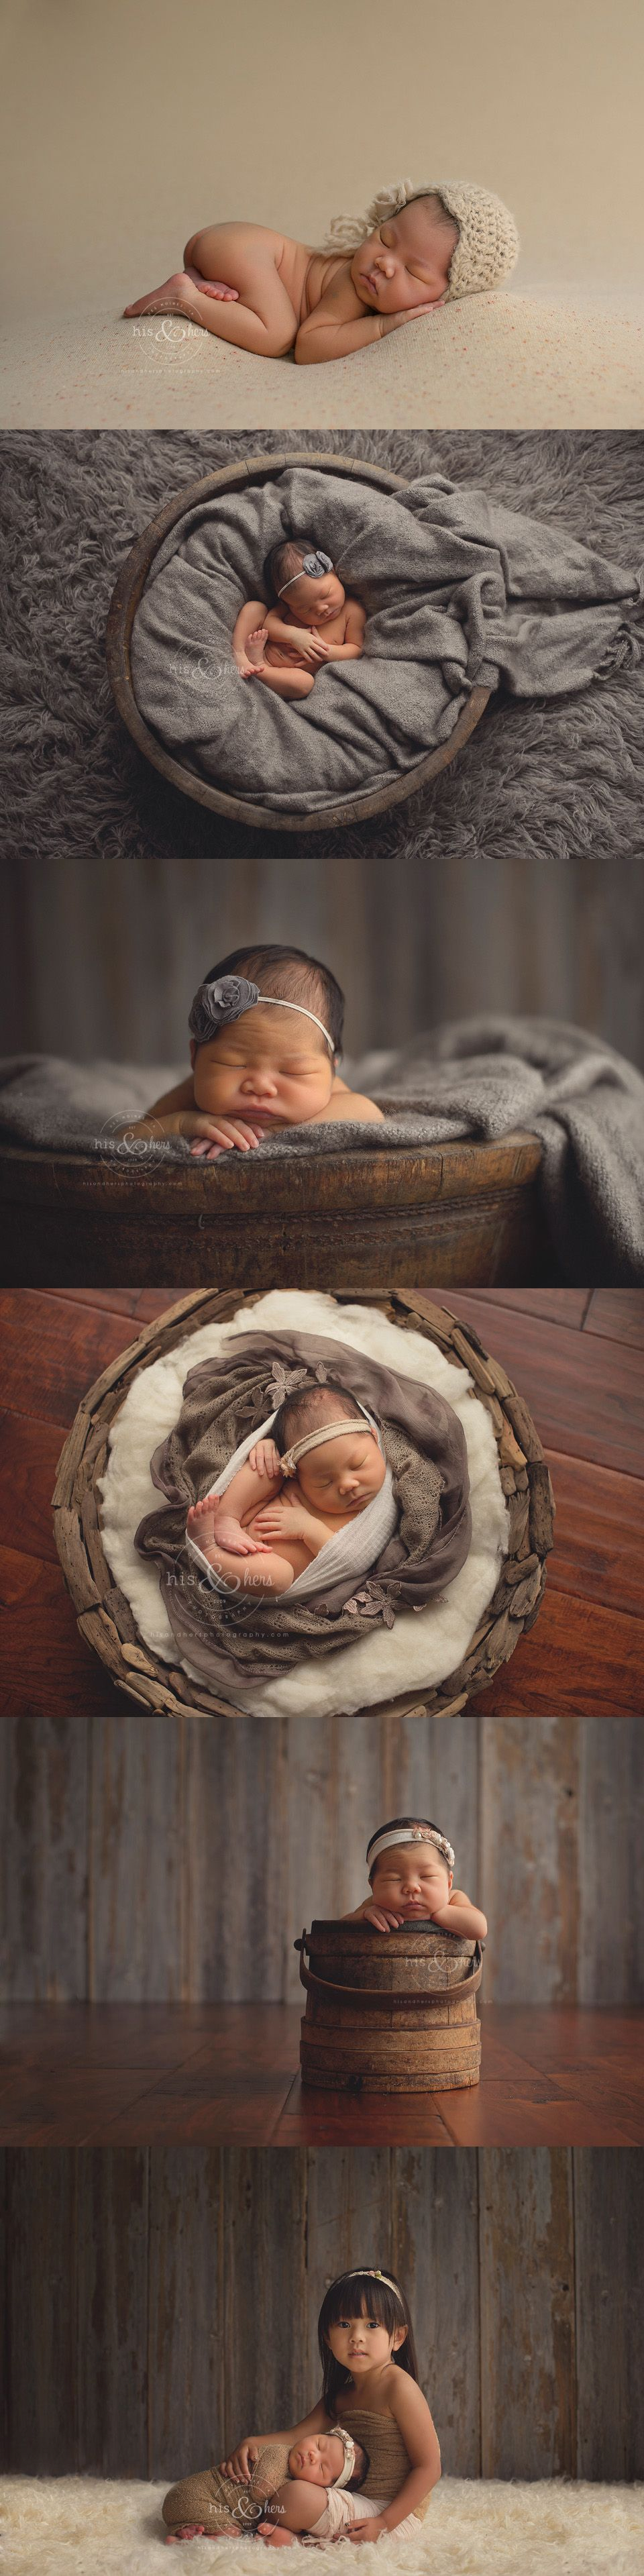 Newborn | Eyslee, 9 days new